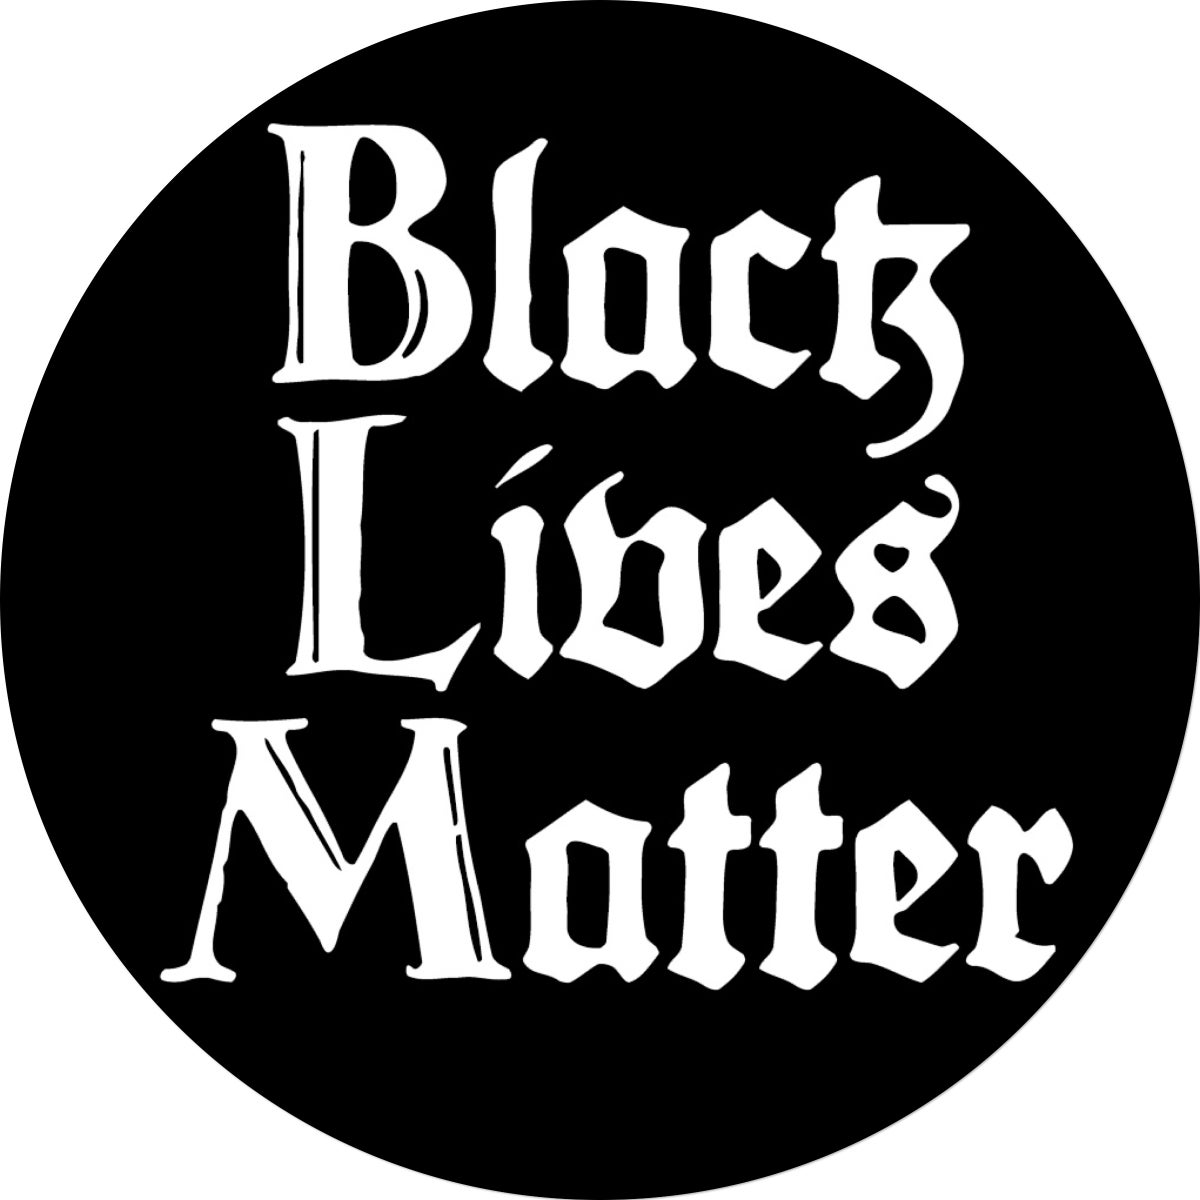 Image of Black Lives Matter Sticker (Fundraiser!)